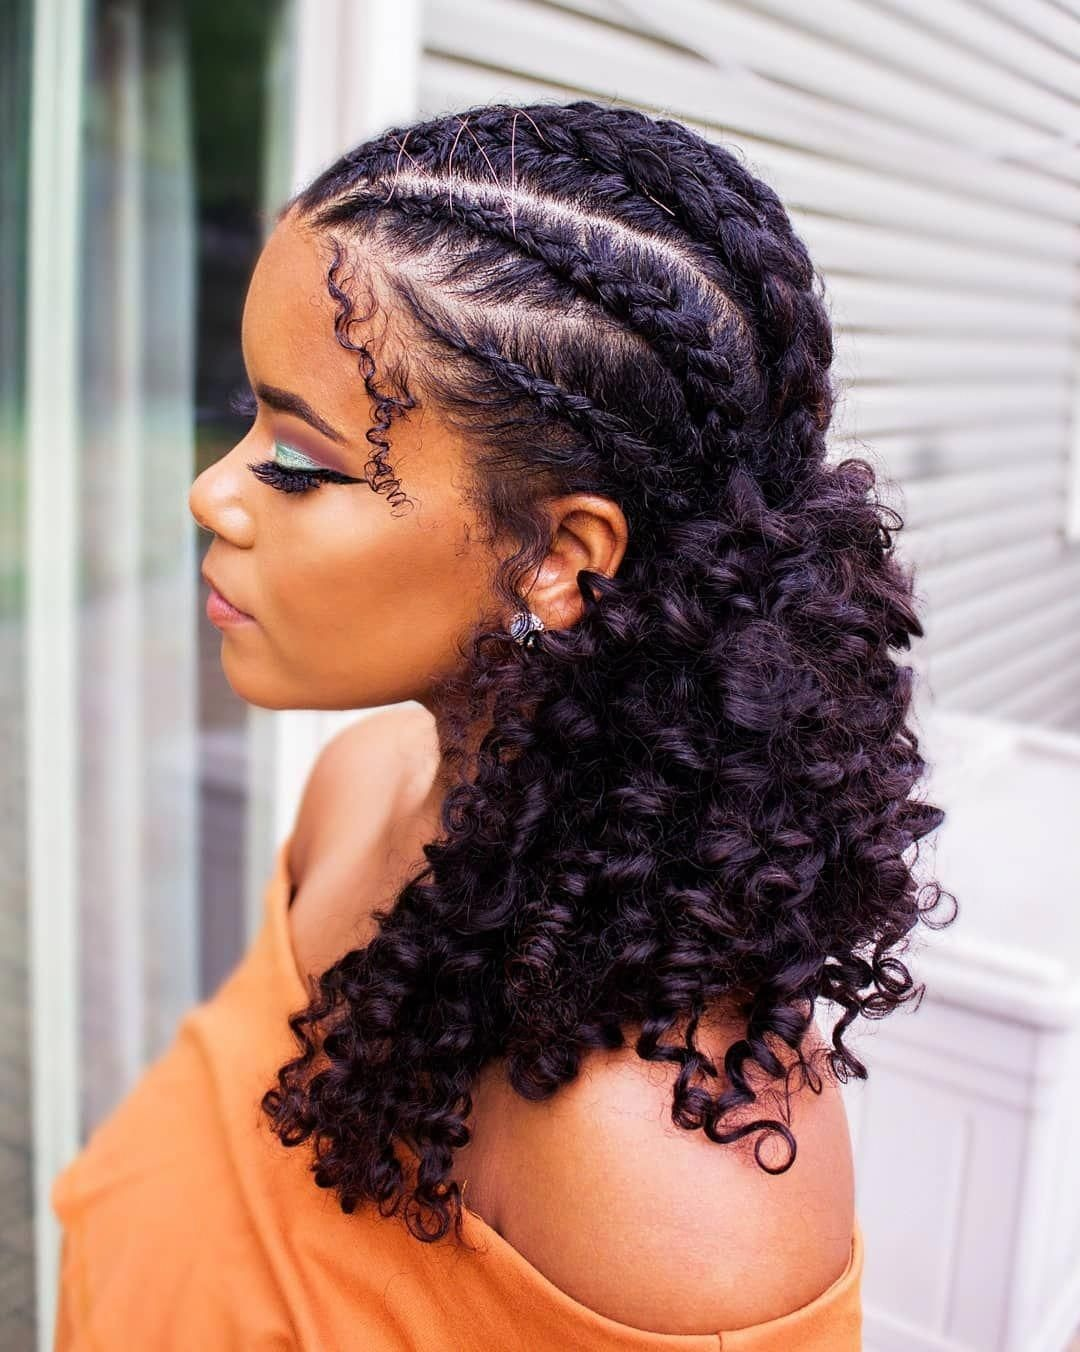 35 Natural Braided Hairstyles Without Weave